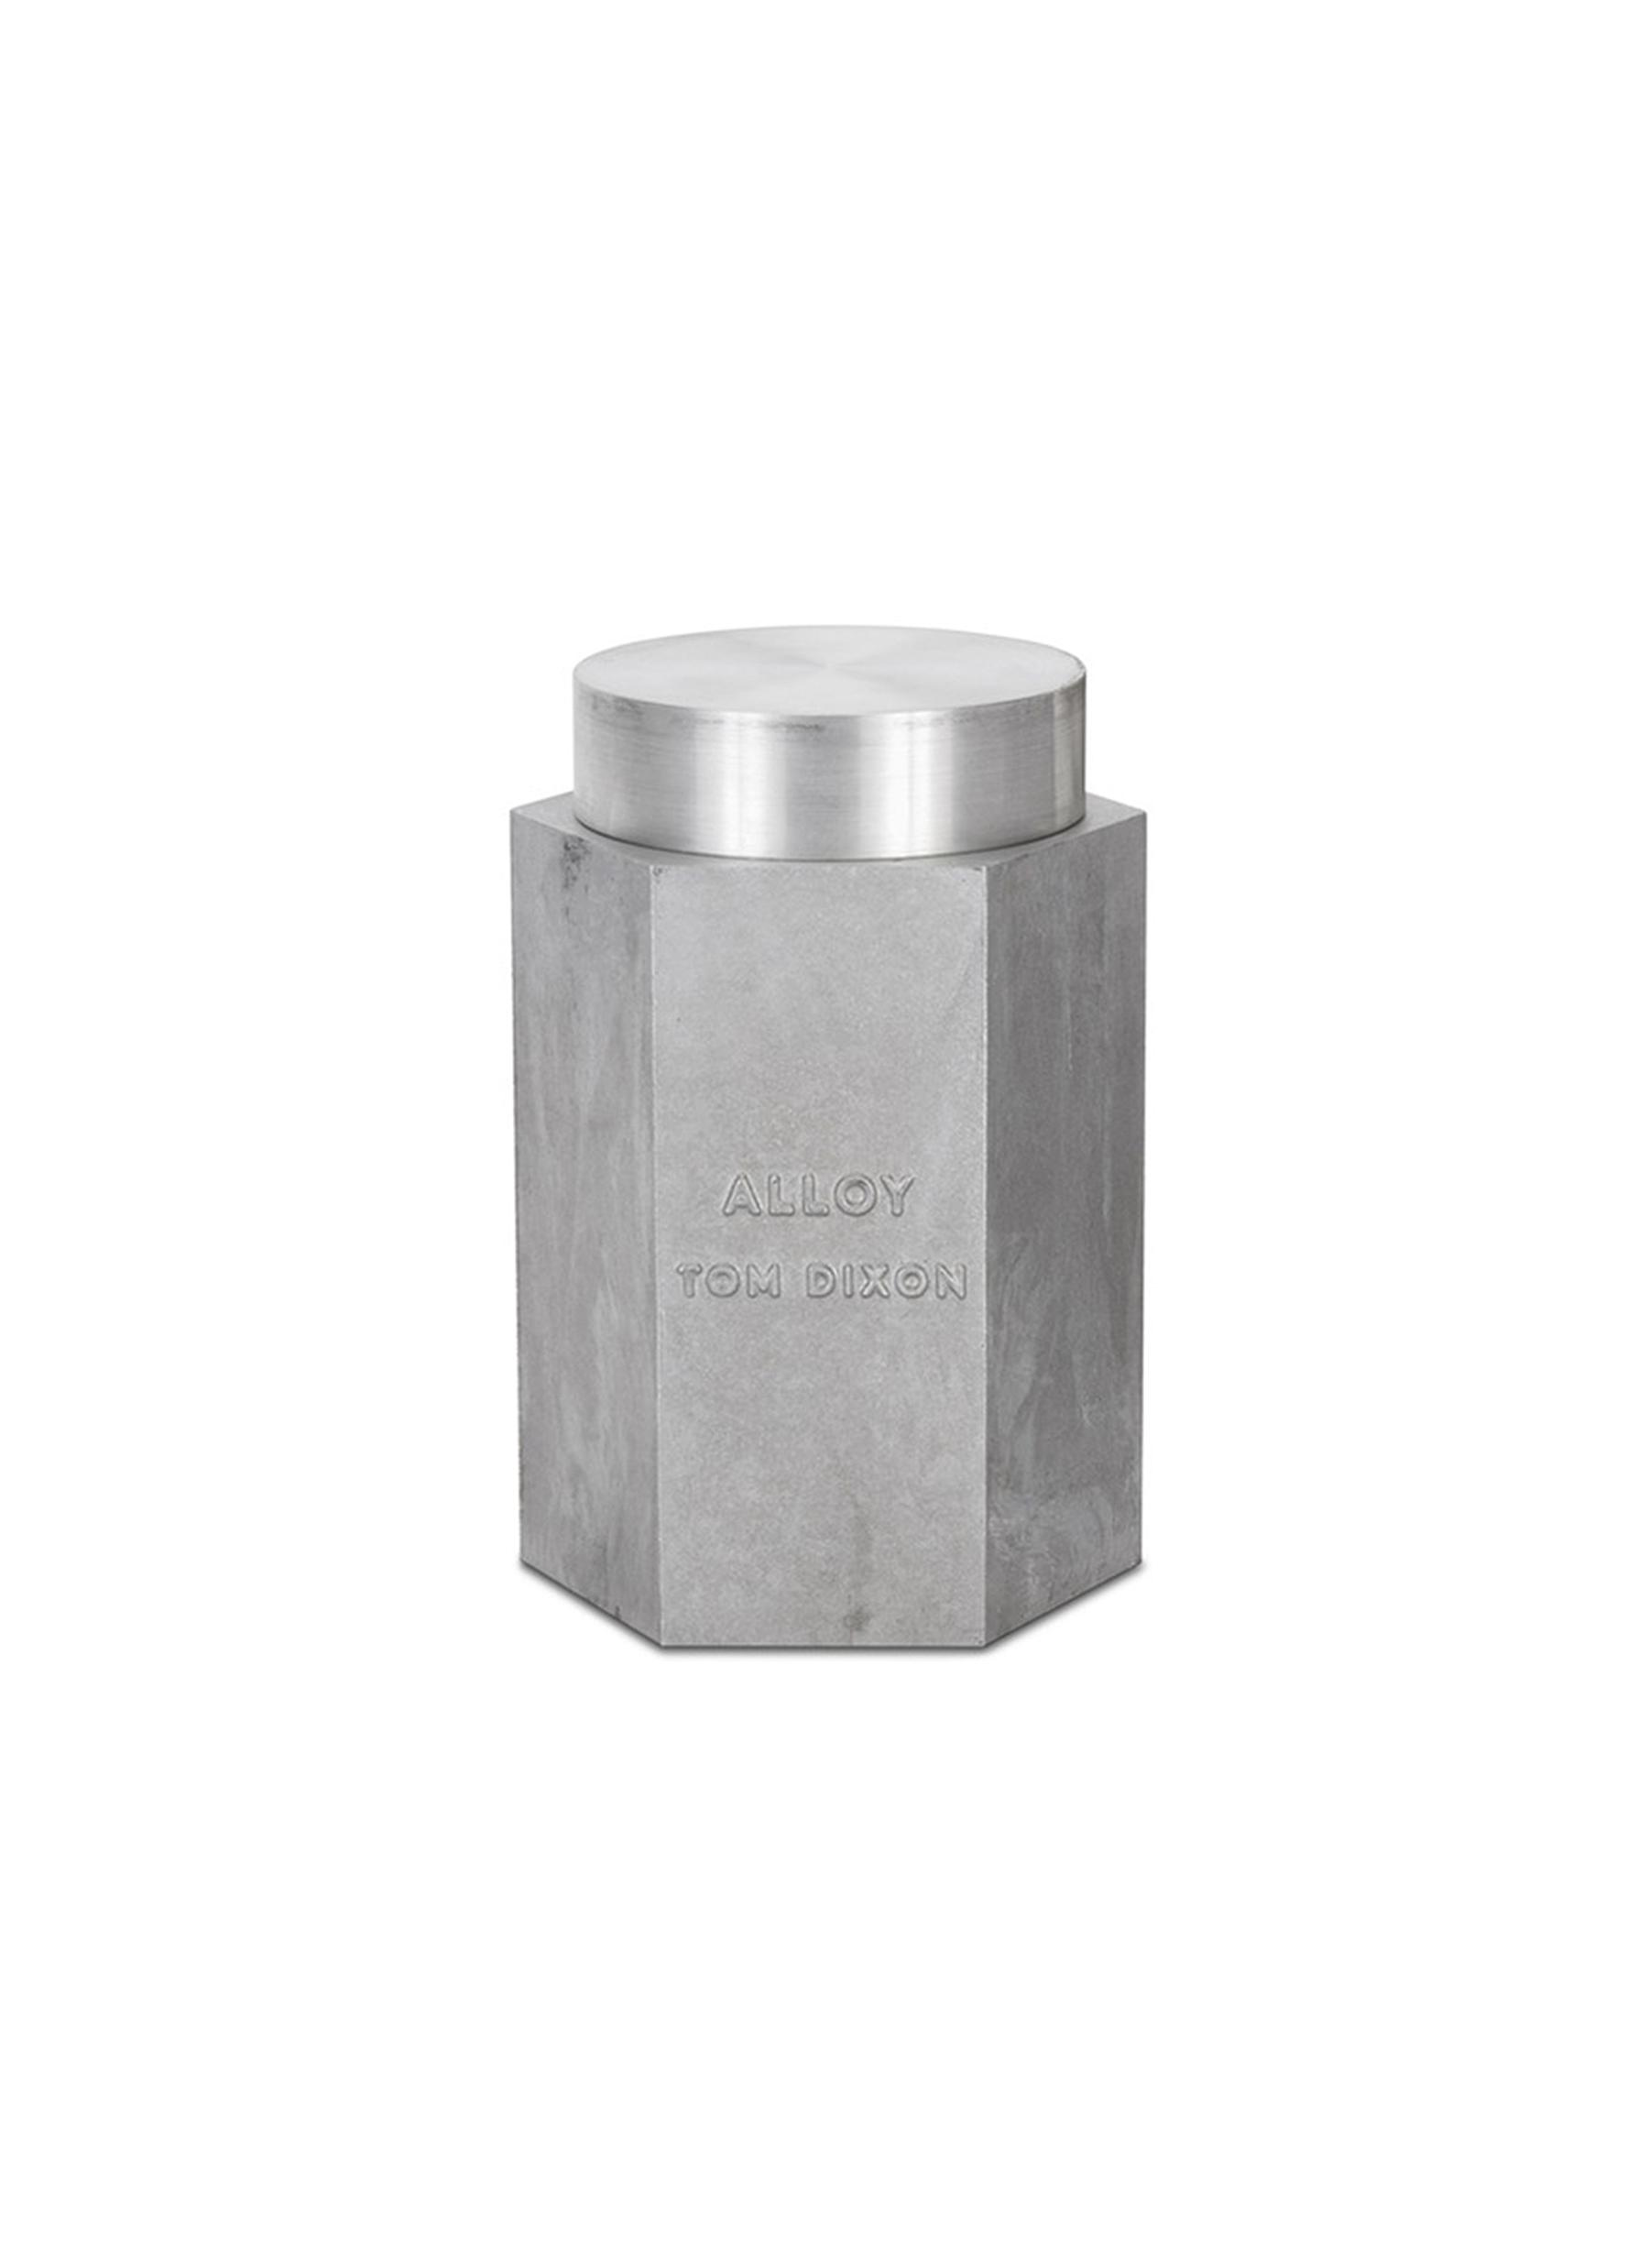 Alloy large scented candle by Tom Dixon